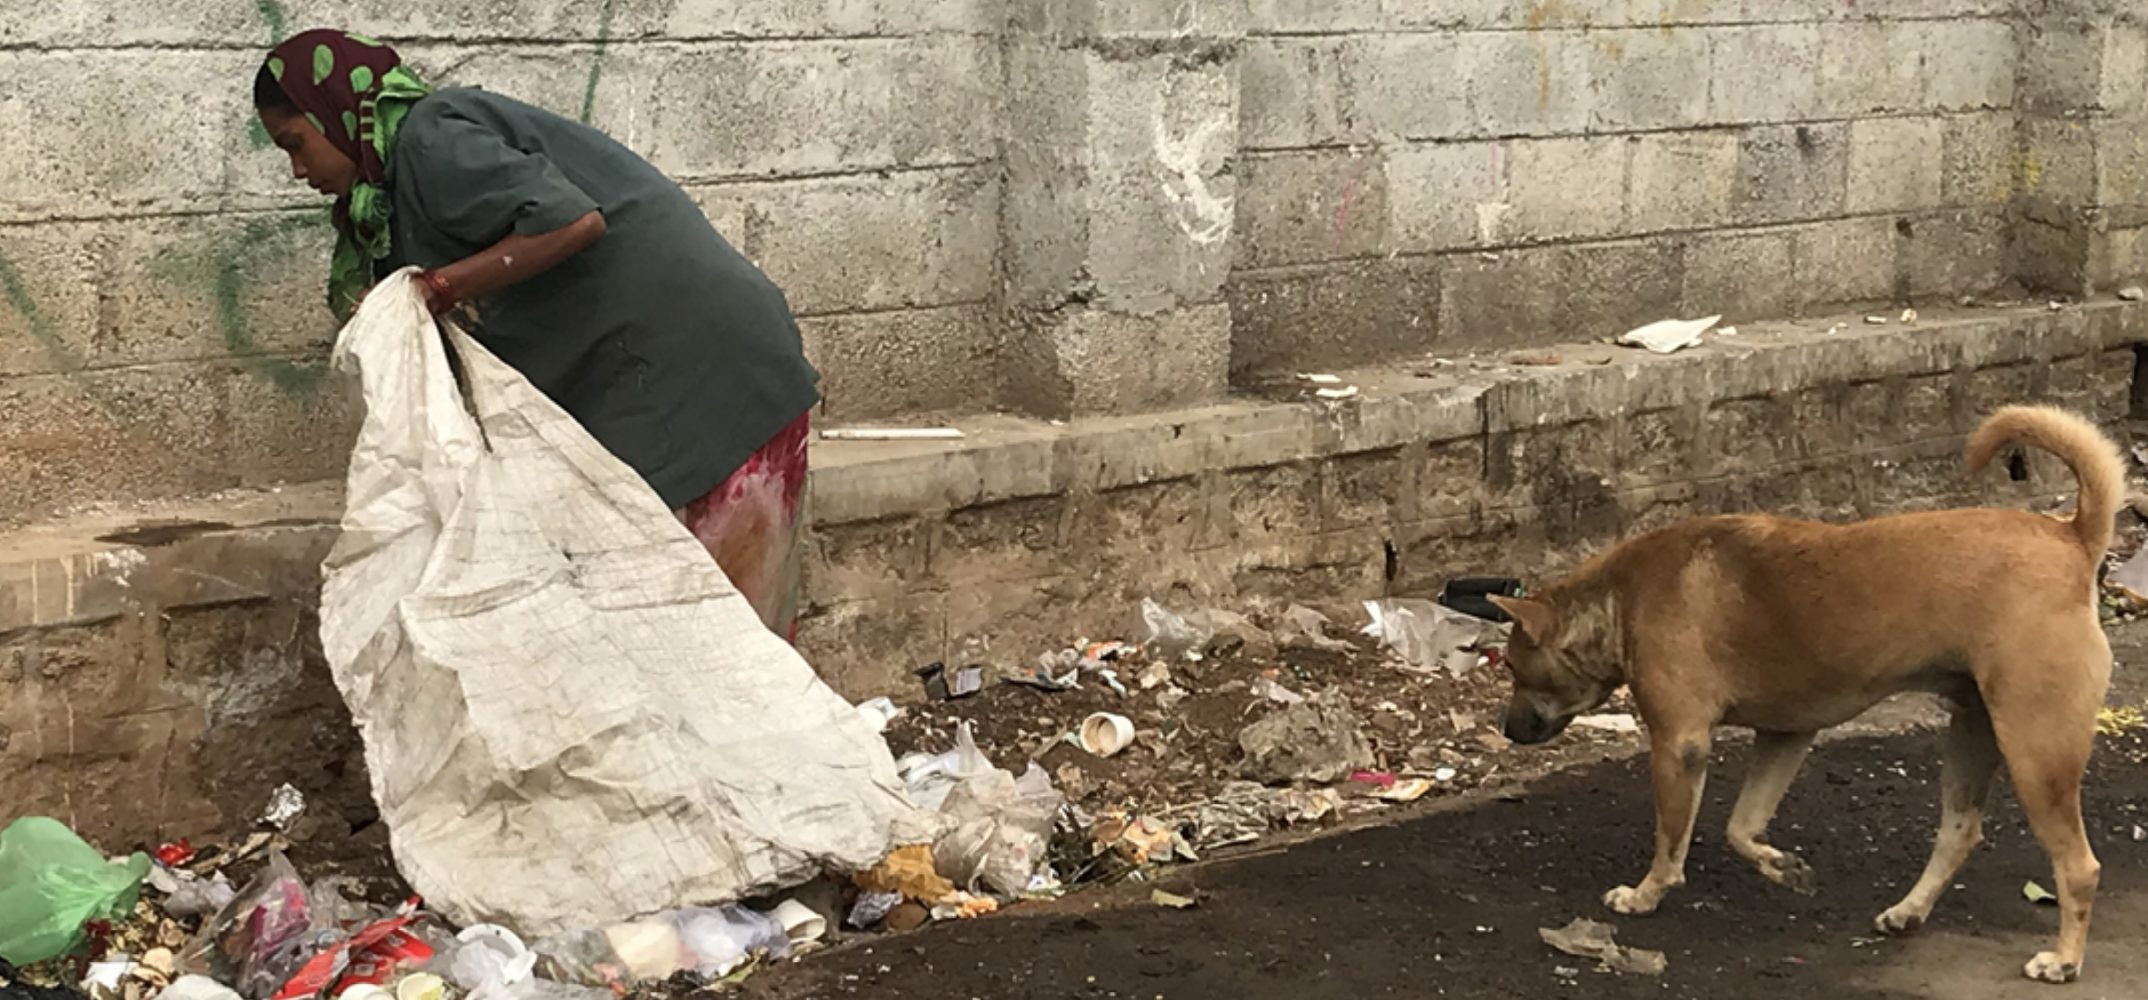 Health and Well-being of Waste Workers in India